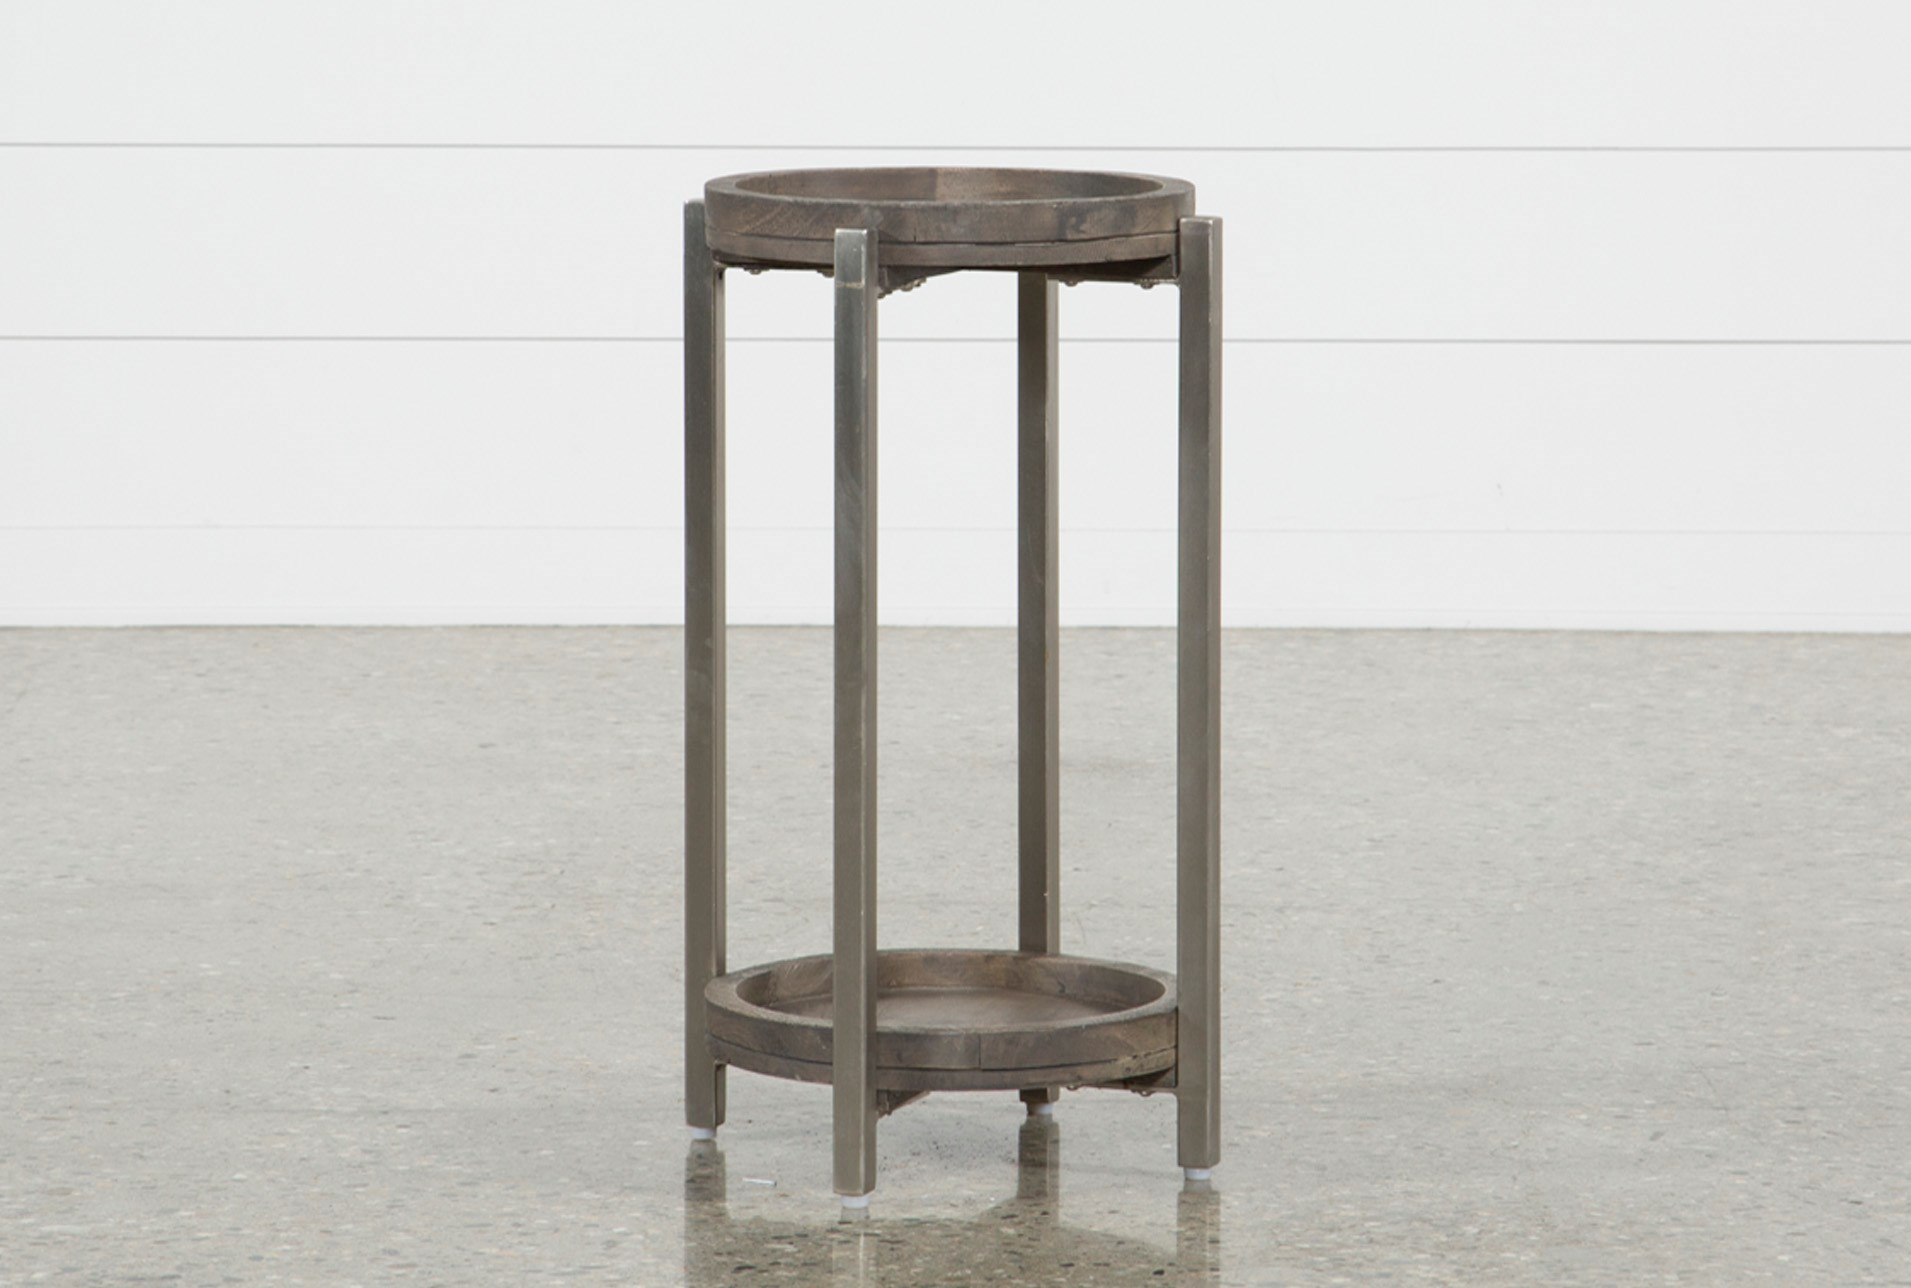 Swell Round Accent Table Qty 1 Has Been Successfully Added To Your Cart